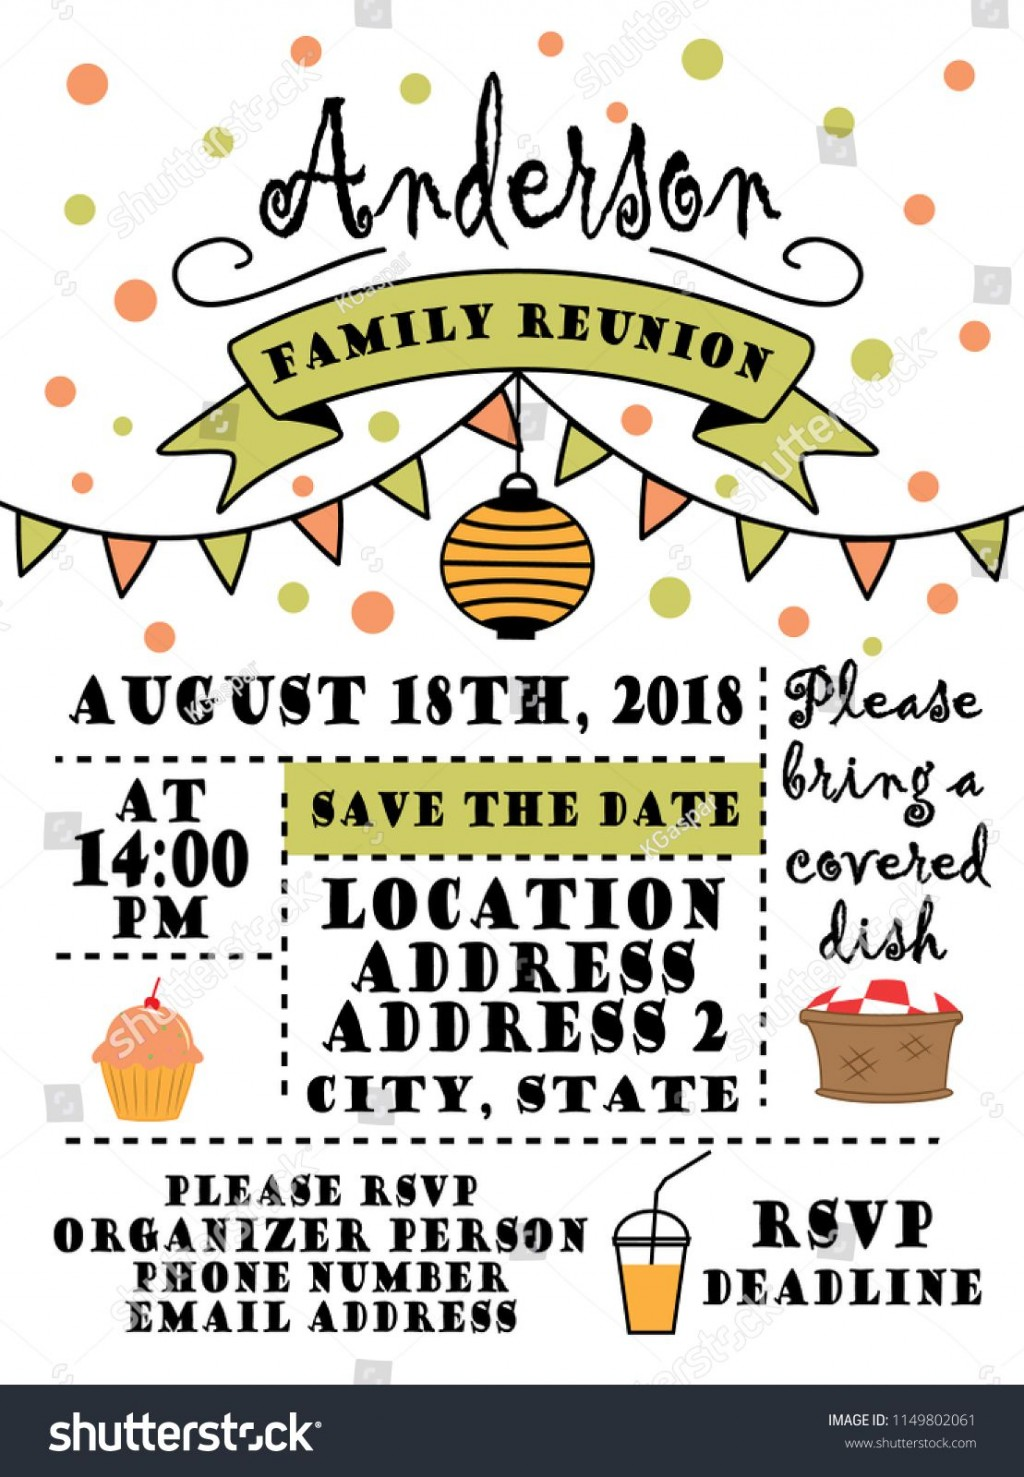 010 Stupendou Family Reunion Invitation Template Free Highest Quality  For Word OnlineLarge